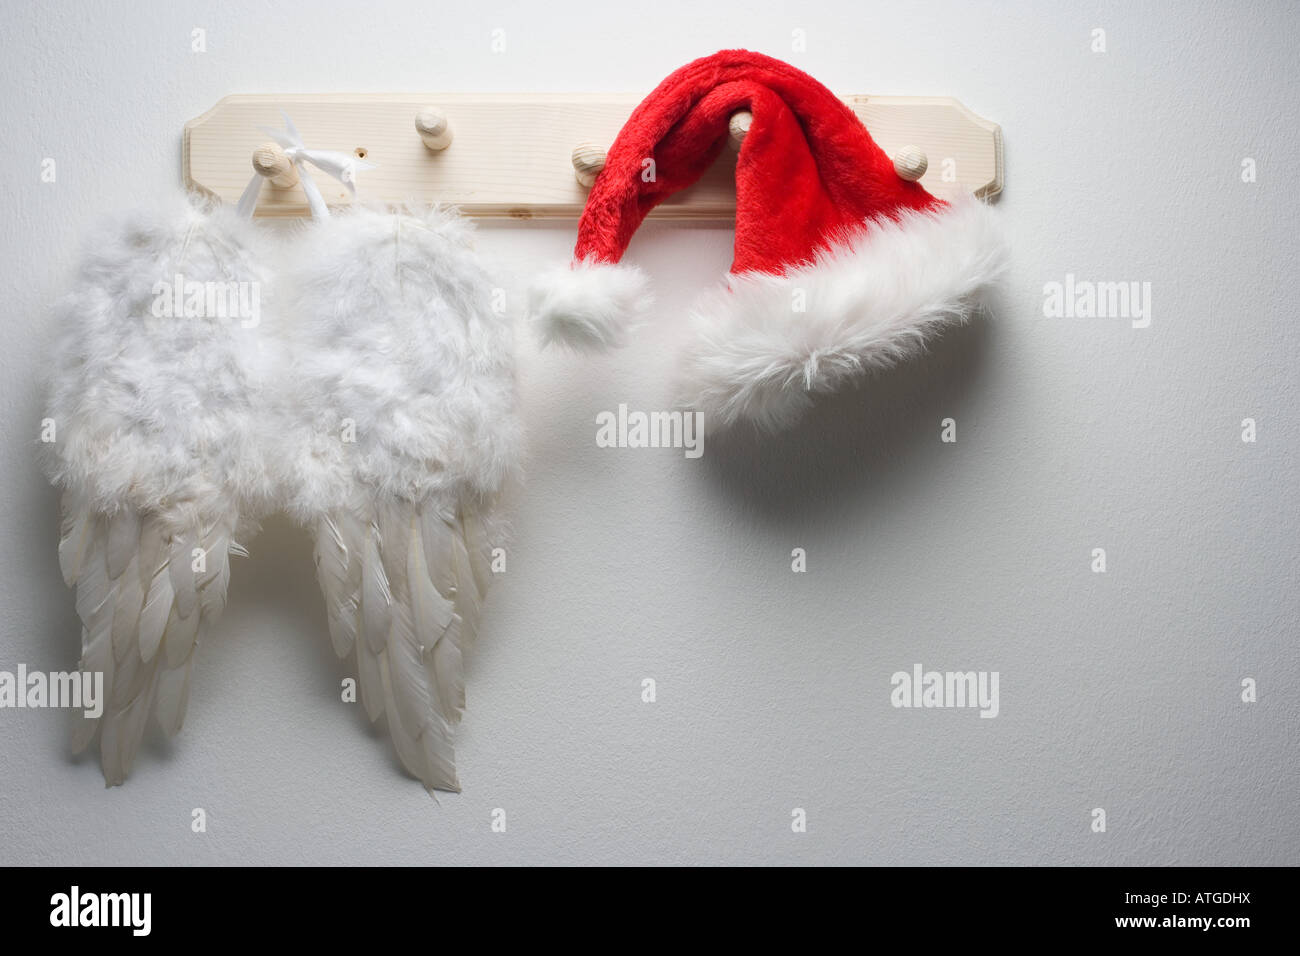 Wings and santas hat hanging on a hook - Stock Image